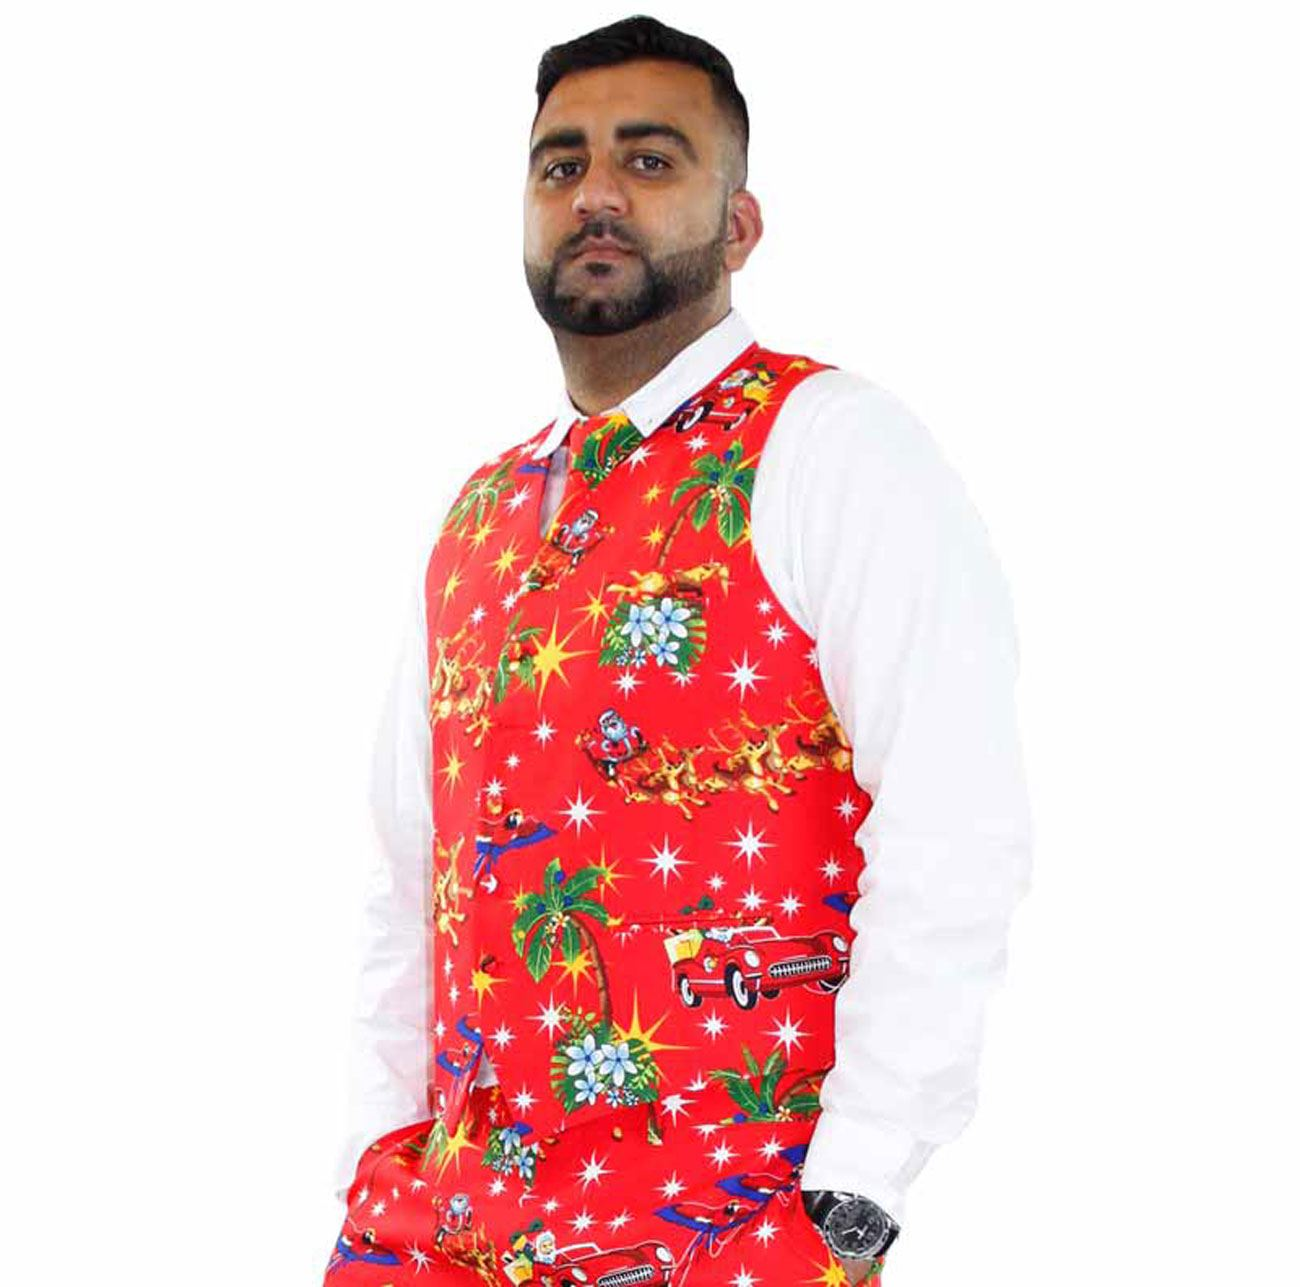 nakedprogrammzce.cf offers 36 cheap christmas waistcoats products. About 75% of these are vests & waistcoats, 27% are men's vests & waistcoats. A wide variety of cheap christmas waistcoats options are available to you, such as paid samples, free samples.